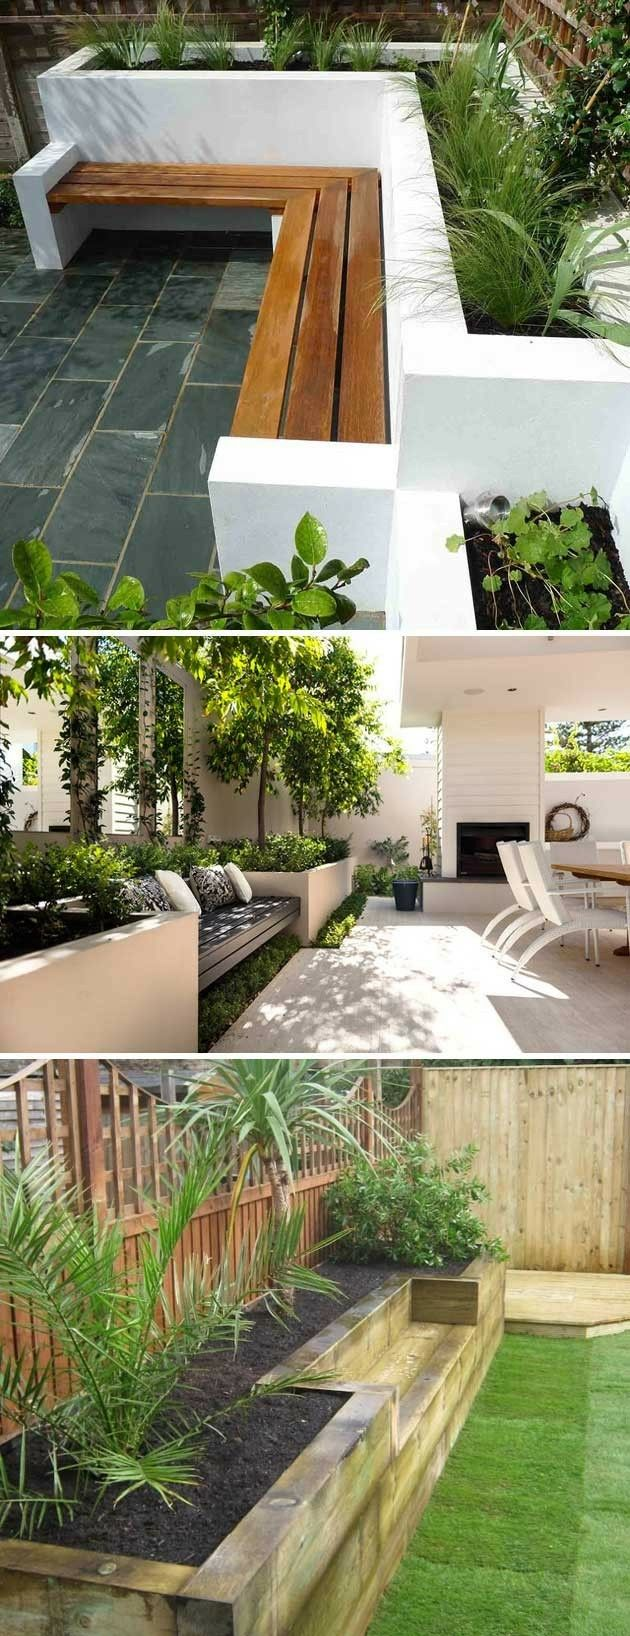 Built In Benches In Almost Anywhere Of A Home: Backyard Seating, Deck Designs Backyard, Backyard Seating Area